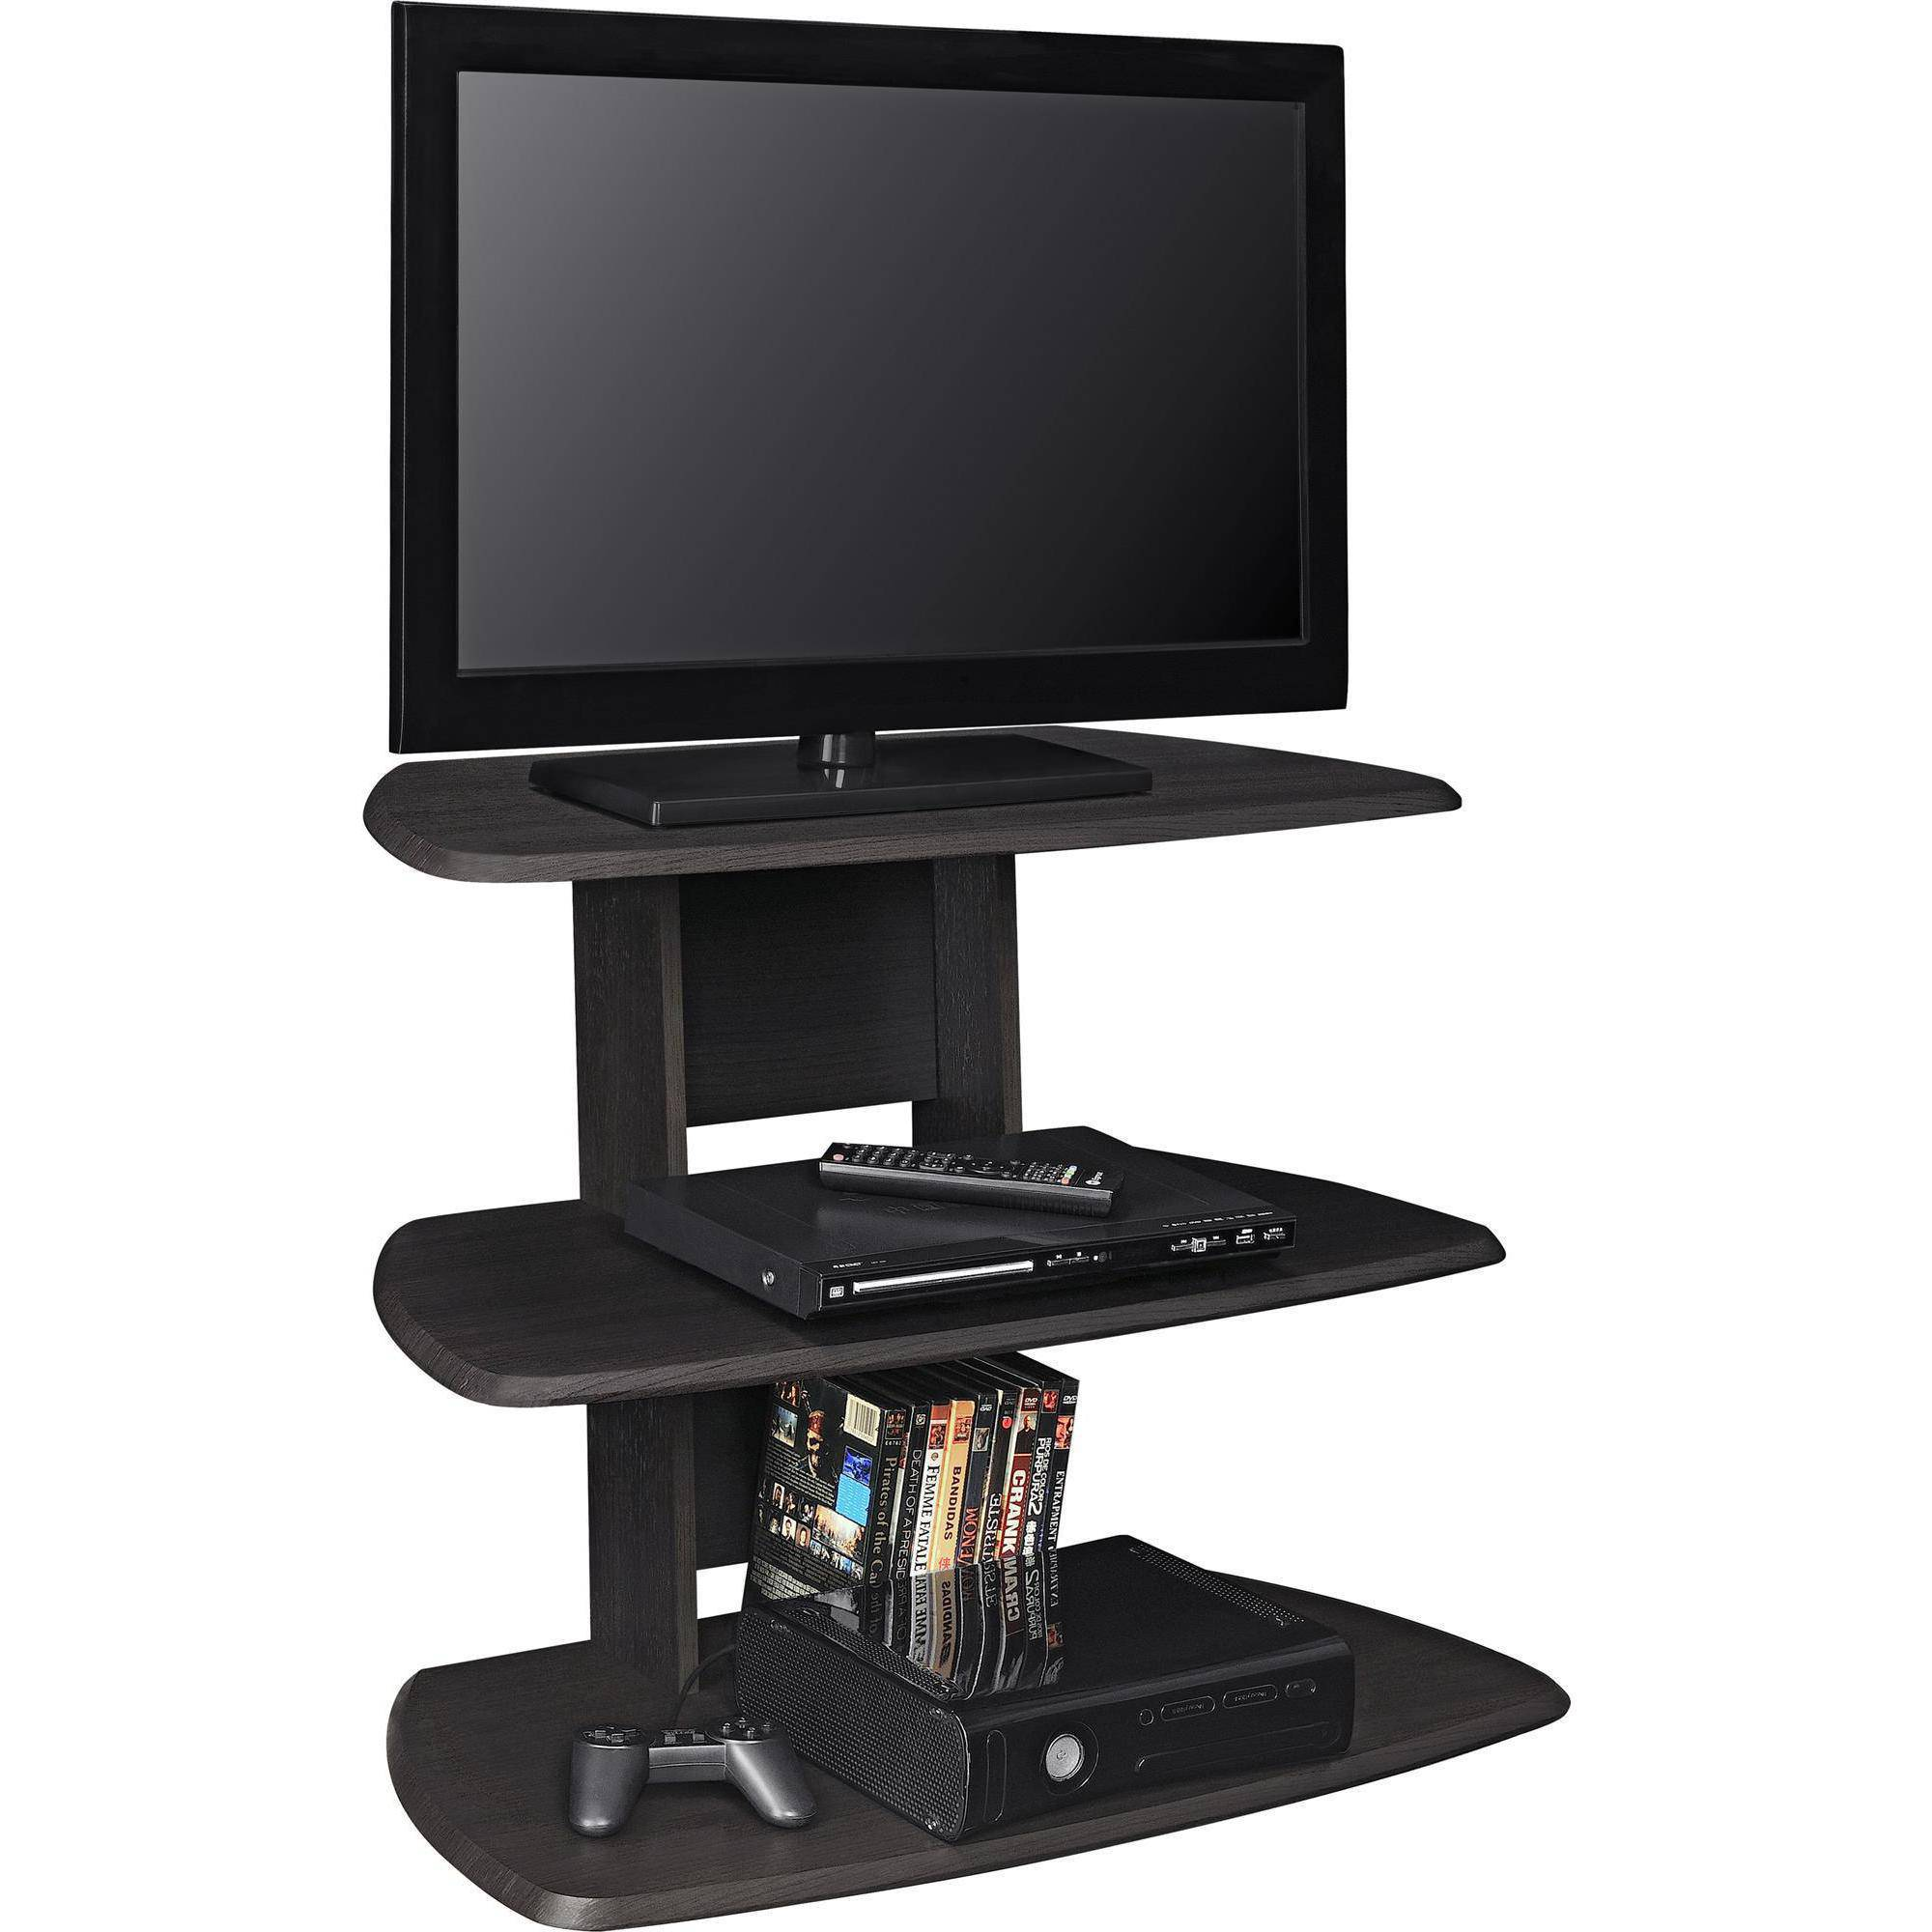 "Ameriwood Home Galaxy II TV Stand for TVs up to 32"" Wide, Espresso"